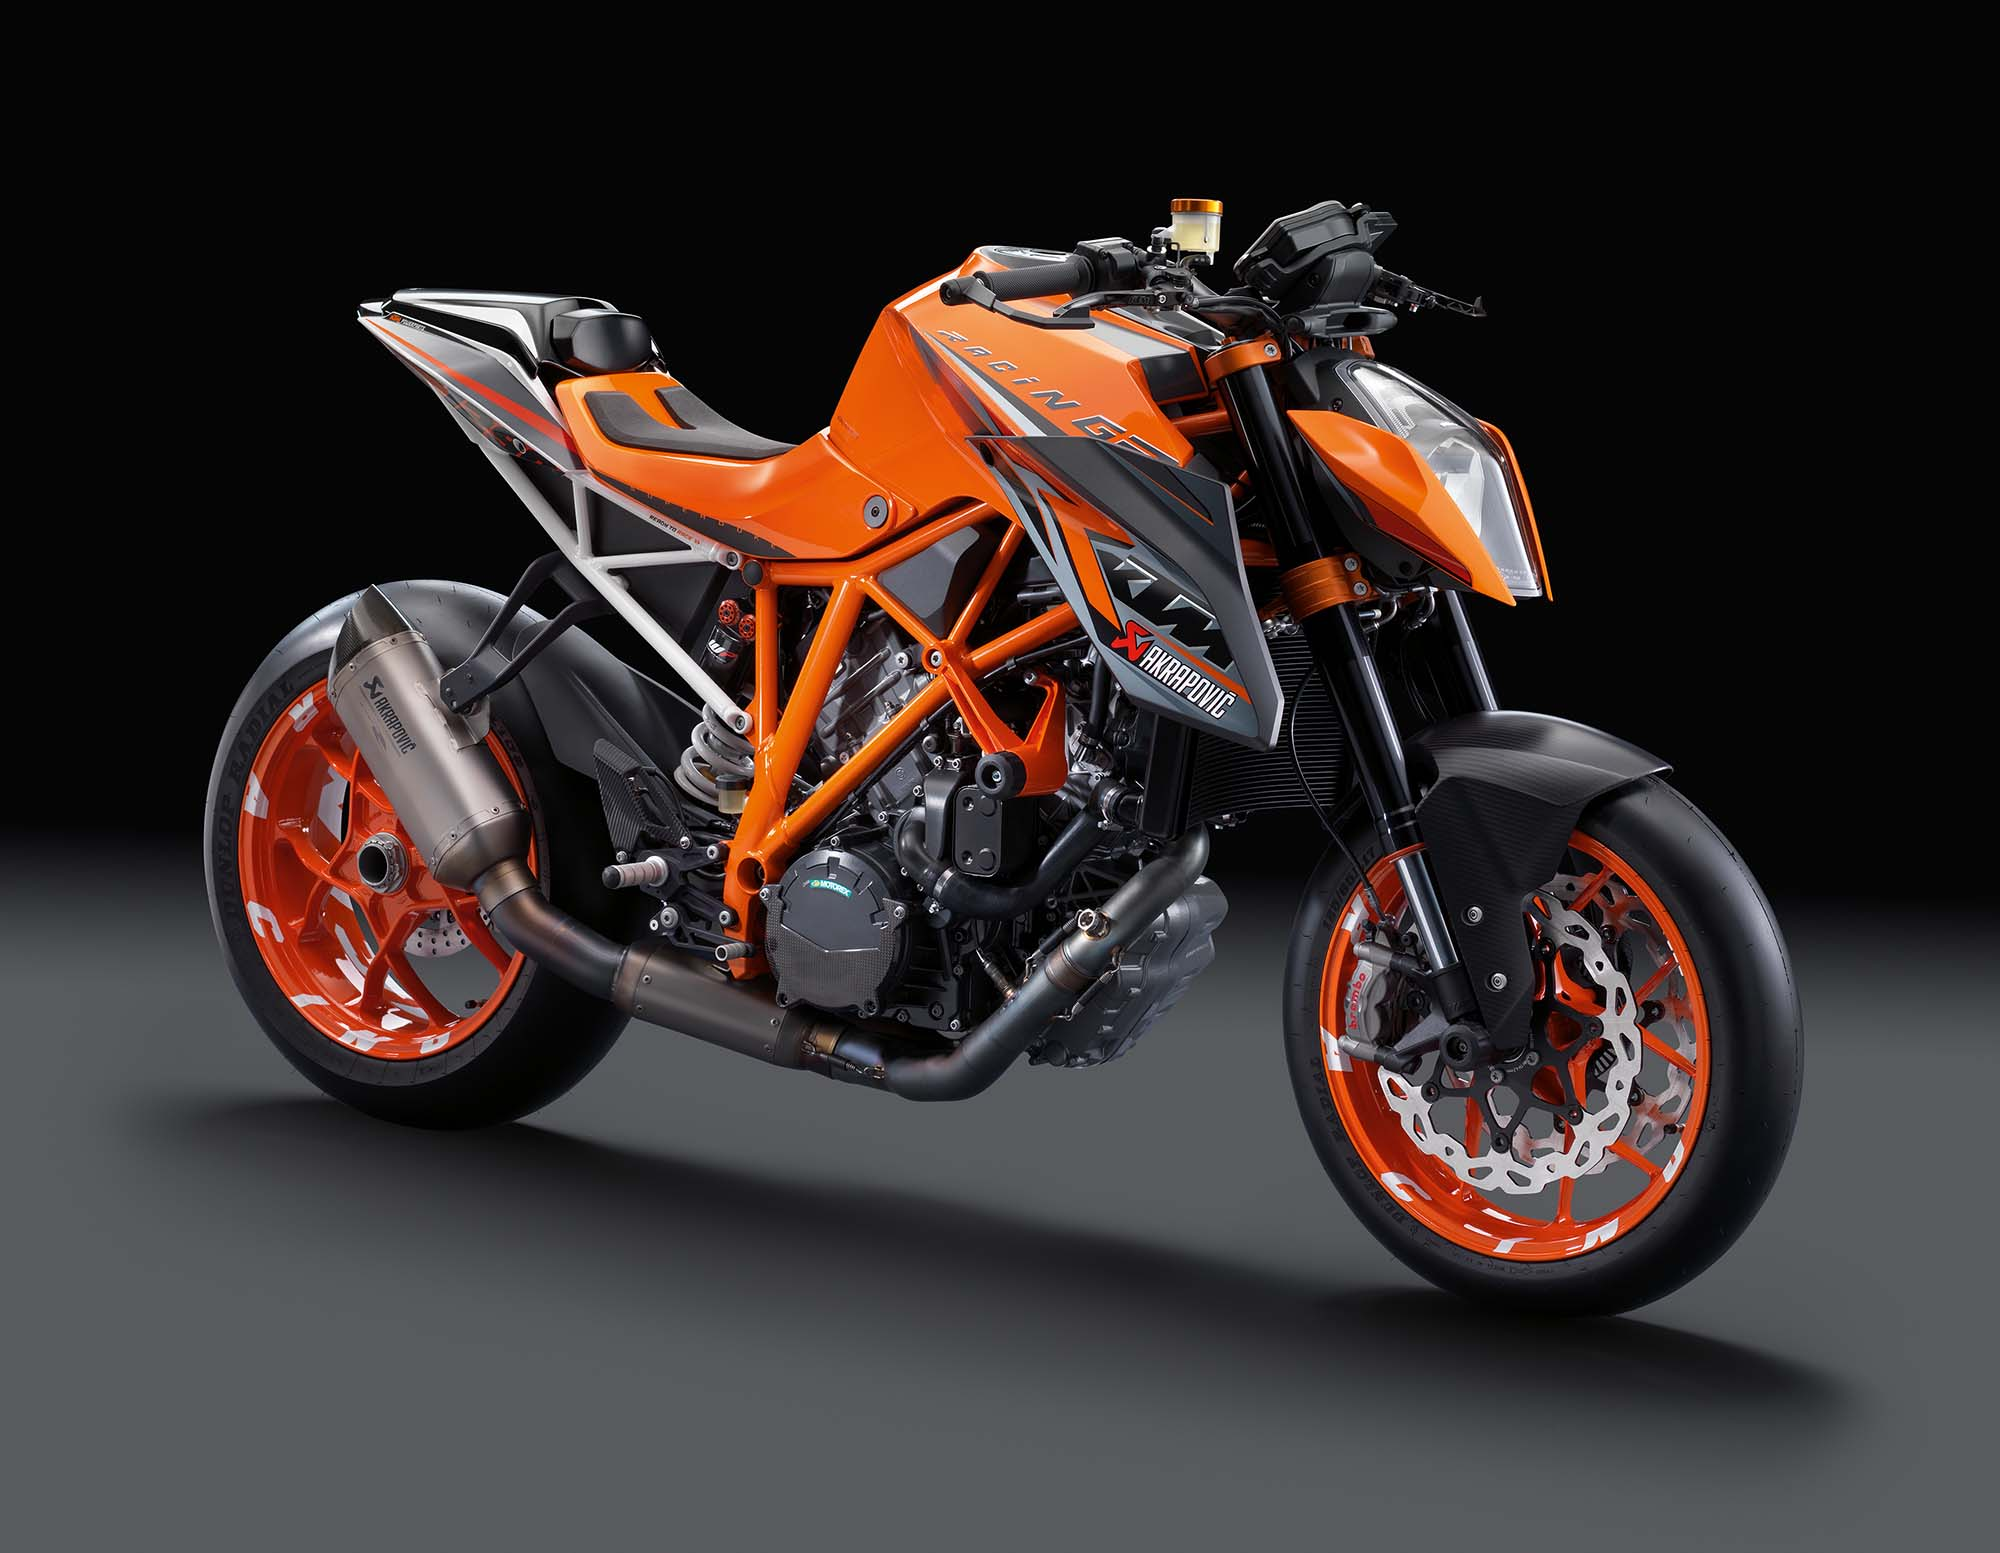 38 hi res photos of the ktm 1290 super duke r